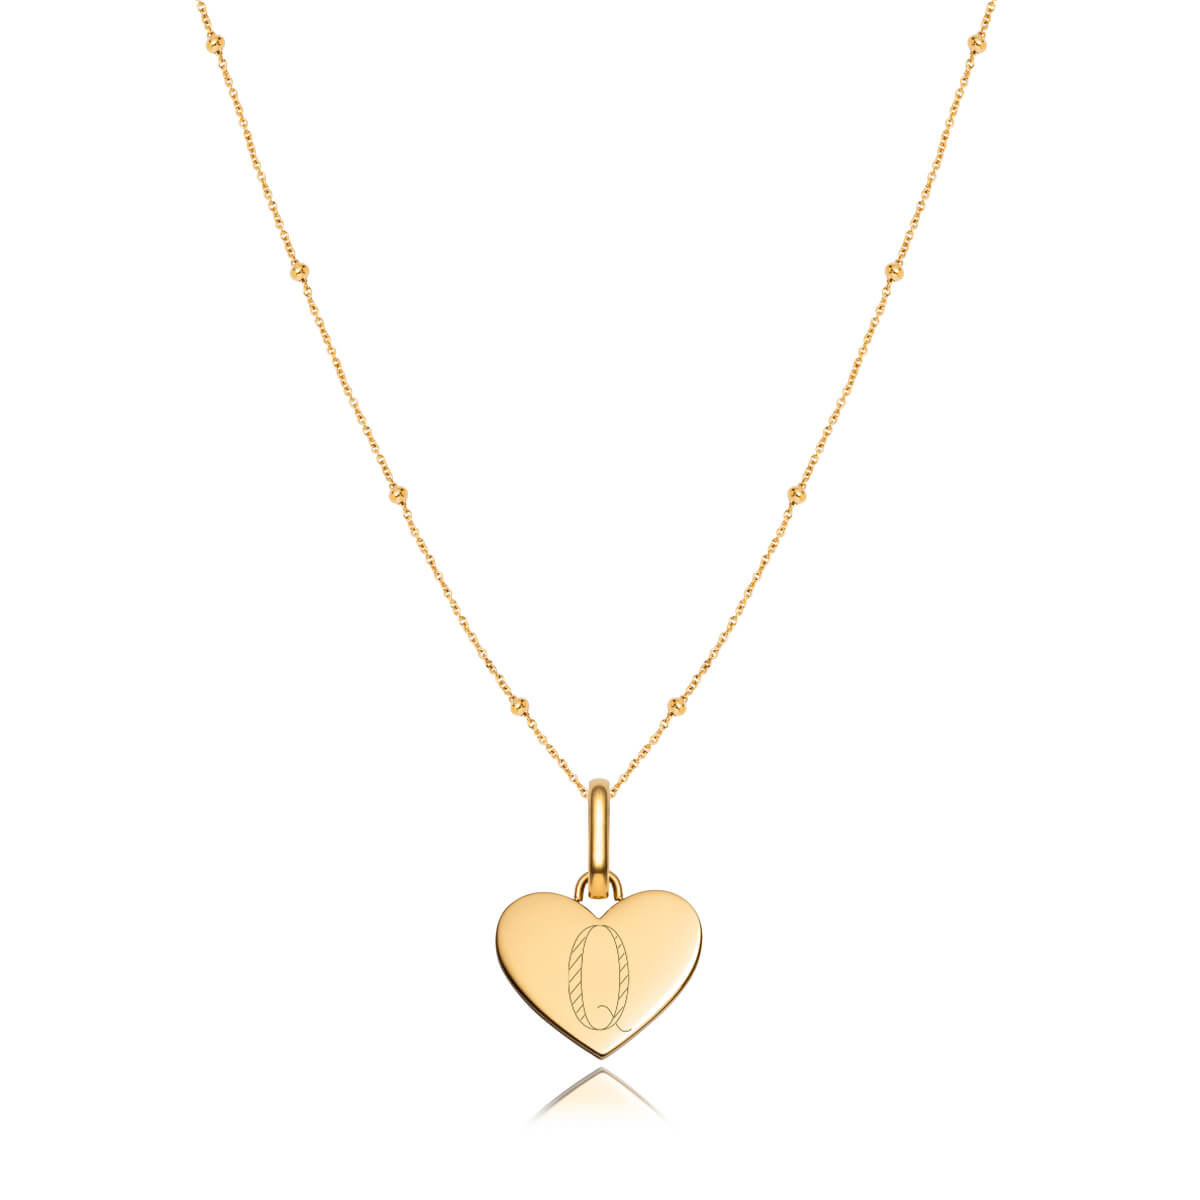 Heart Sphere Chain Necklace 16 in (Gold)